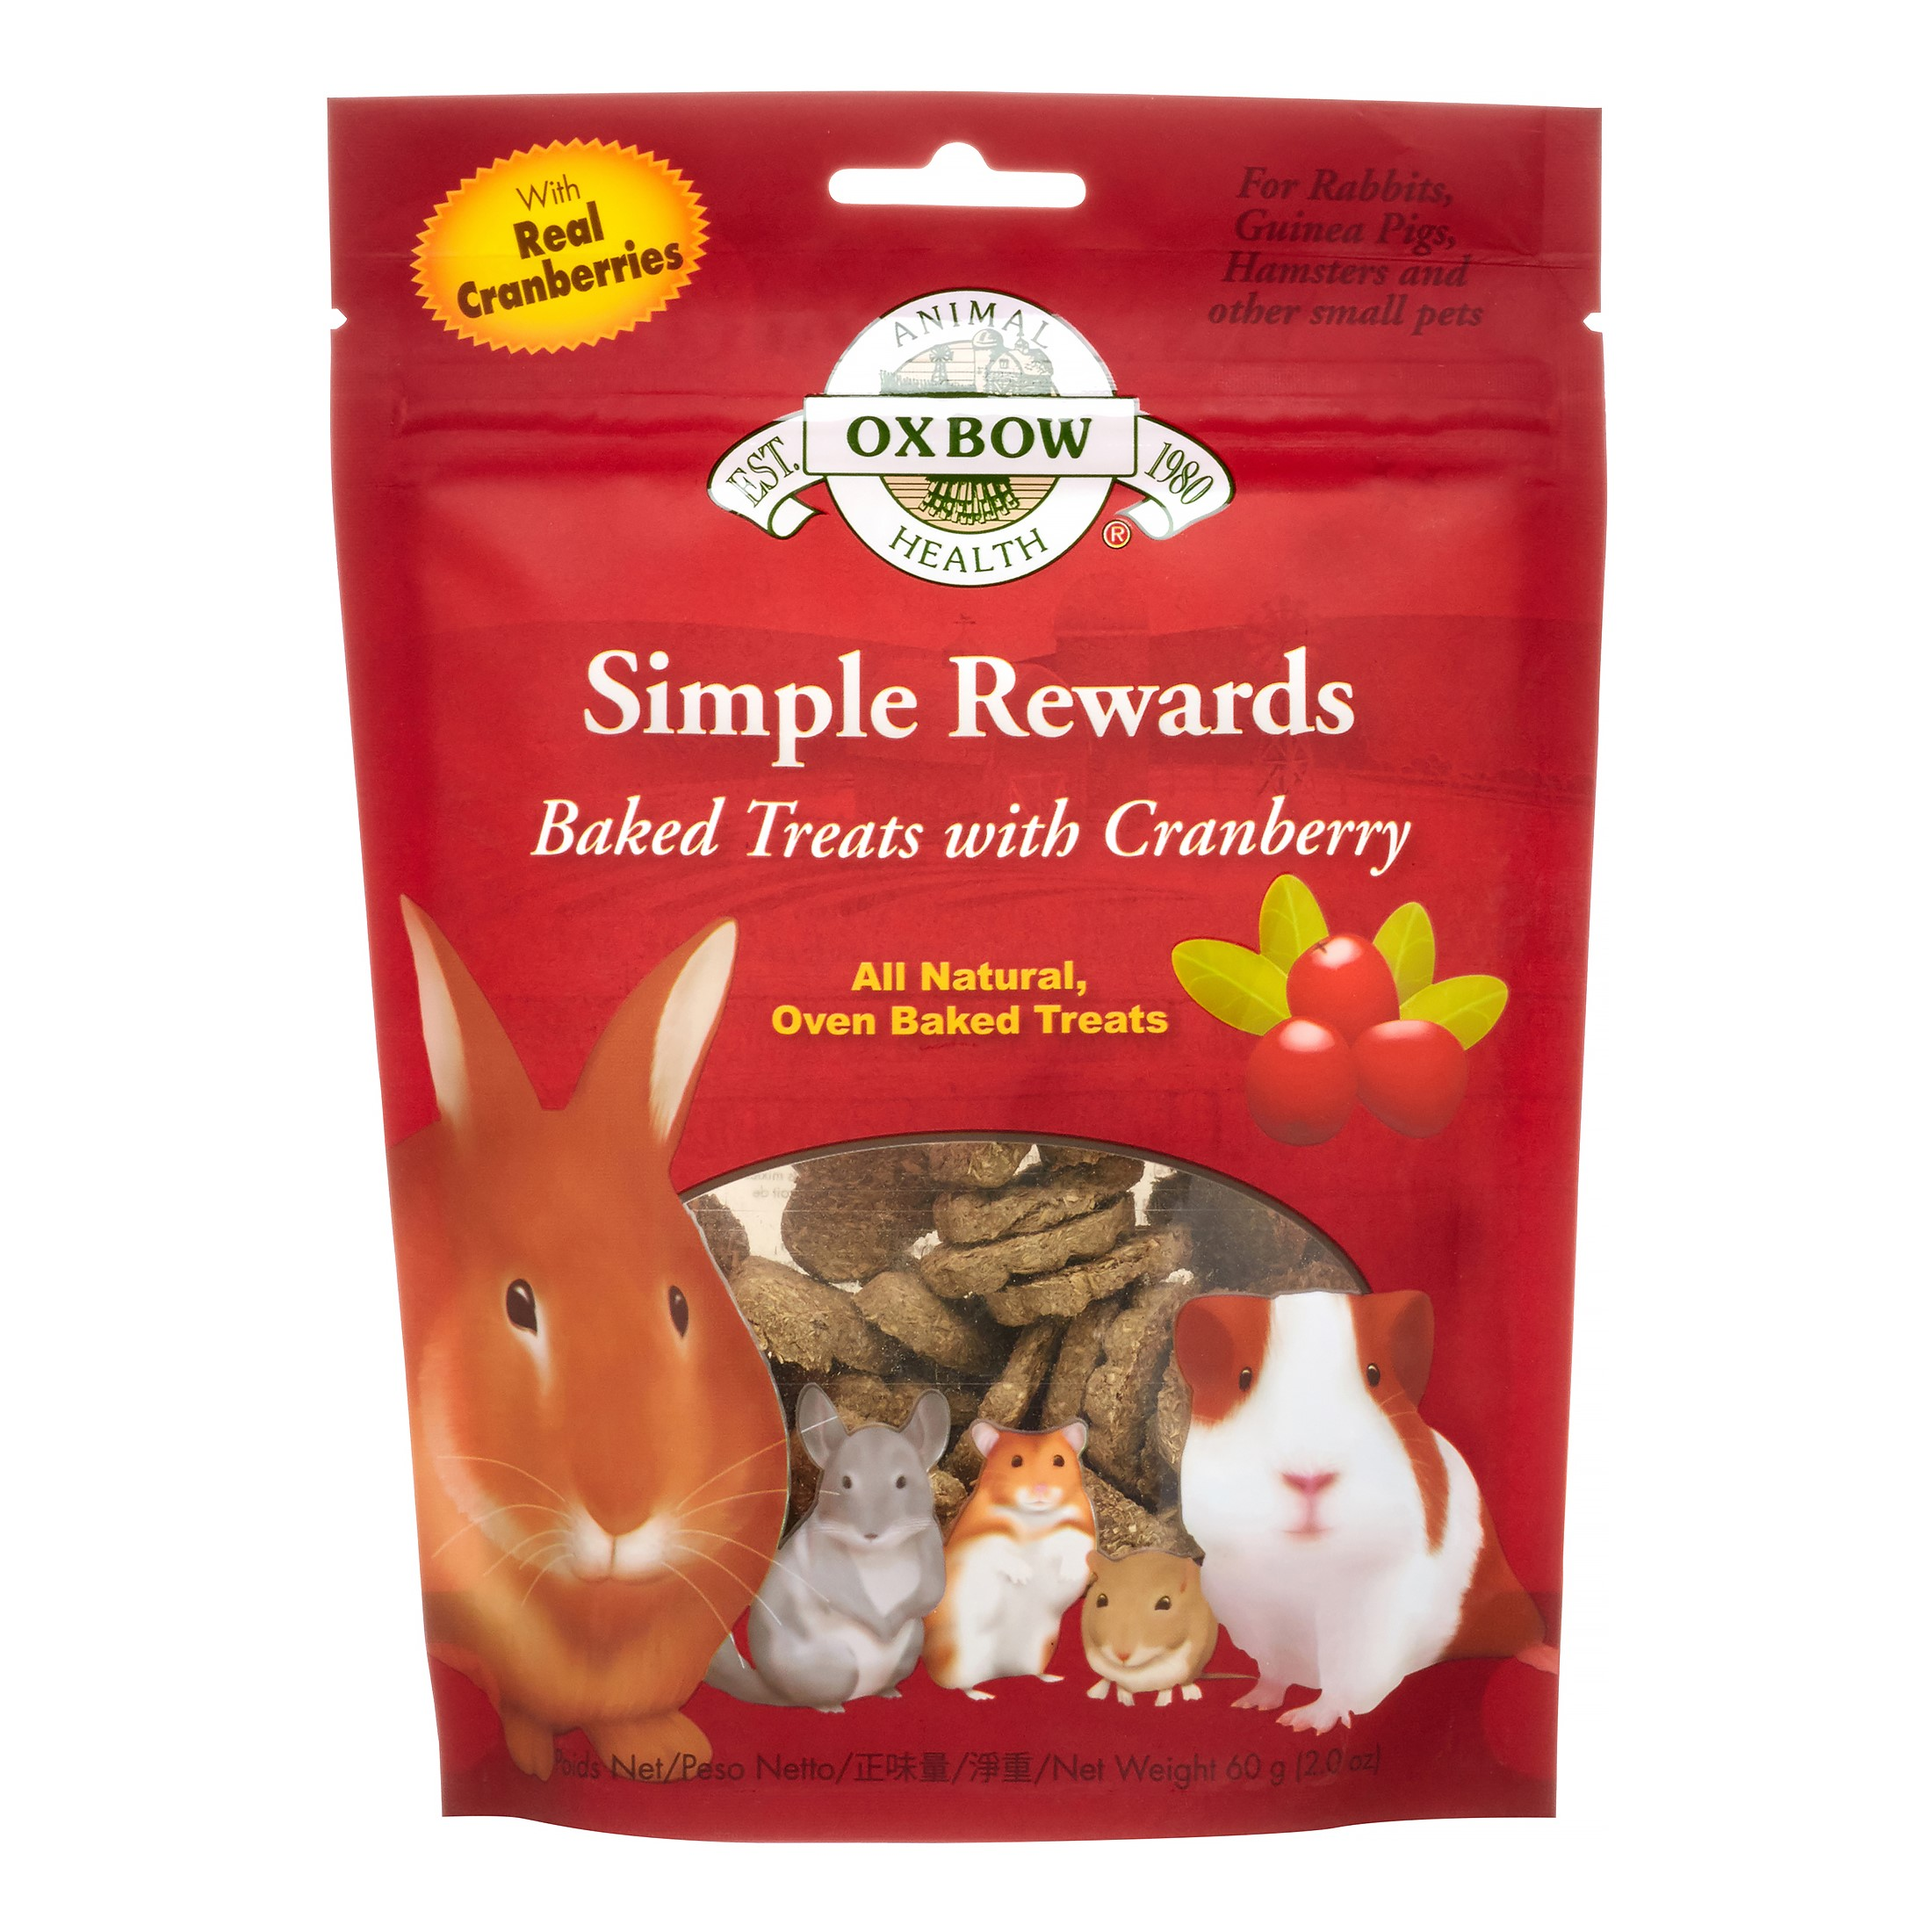 Oxbow Simple Rewards Baked with Cranberry Small Animal Treats, 2 Oz